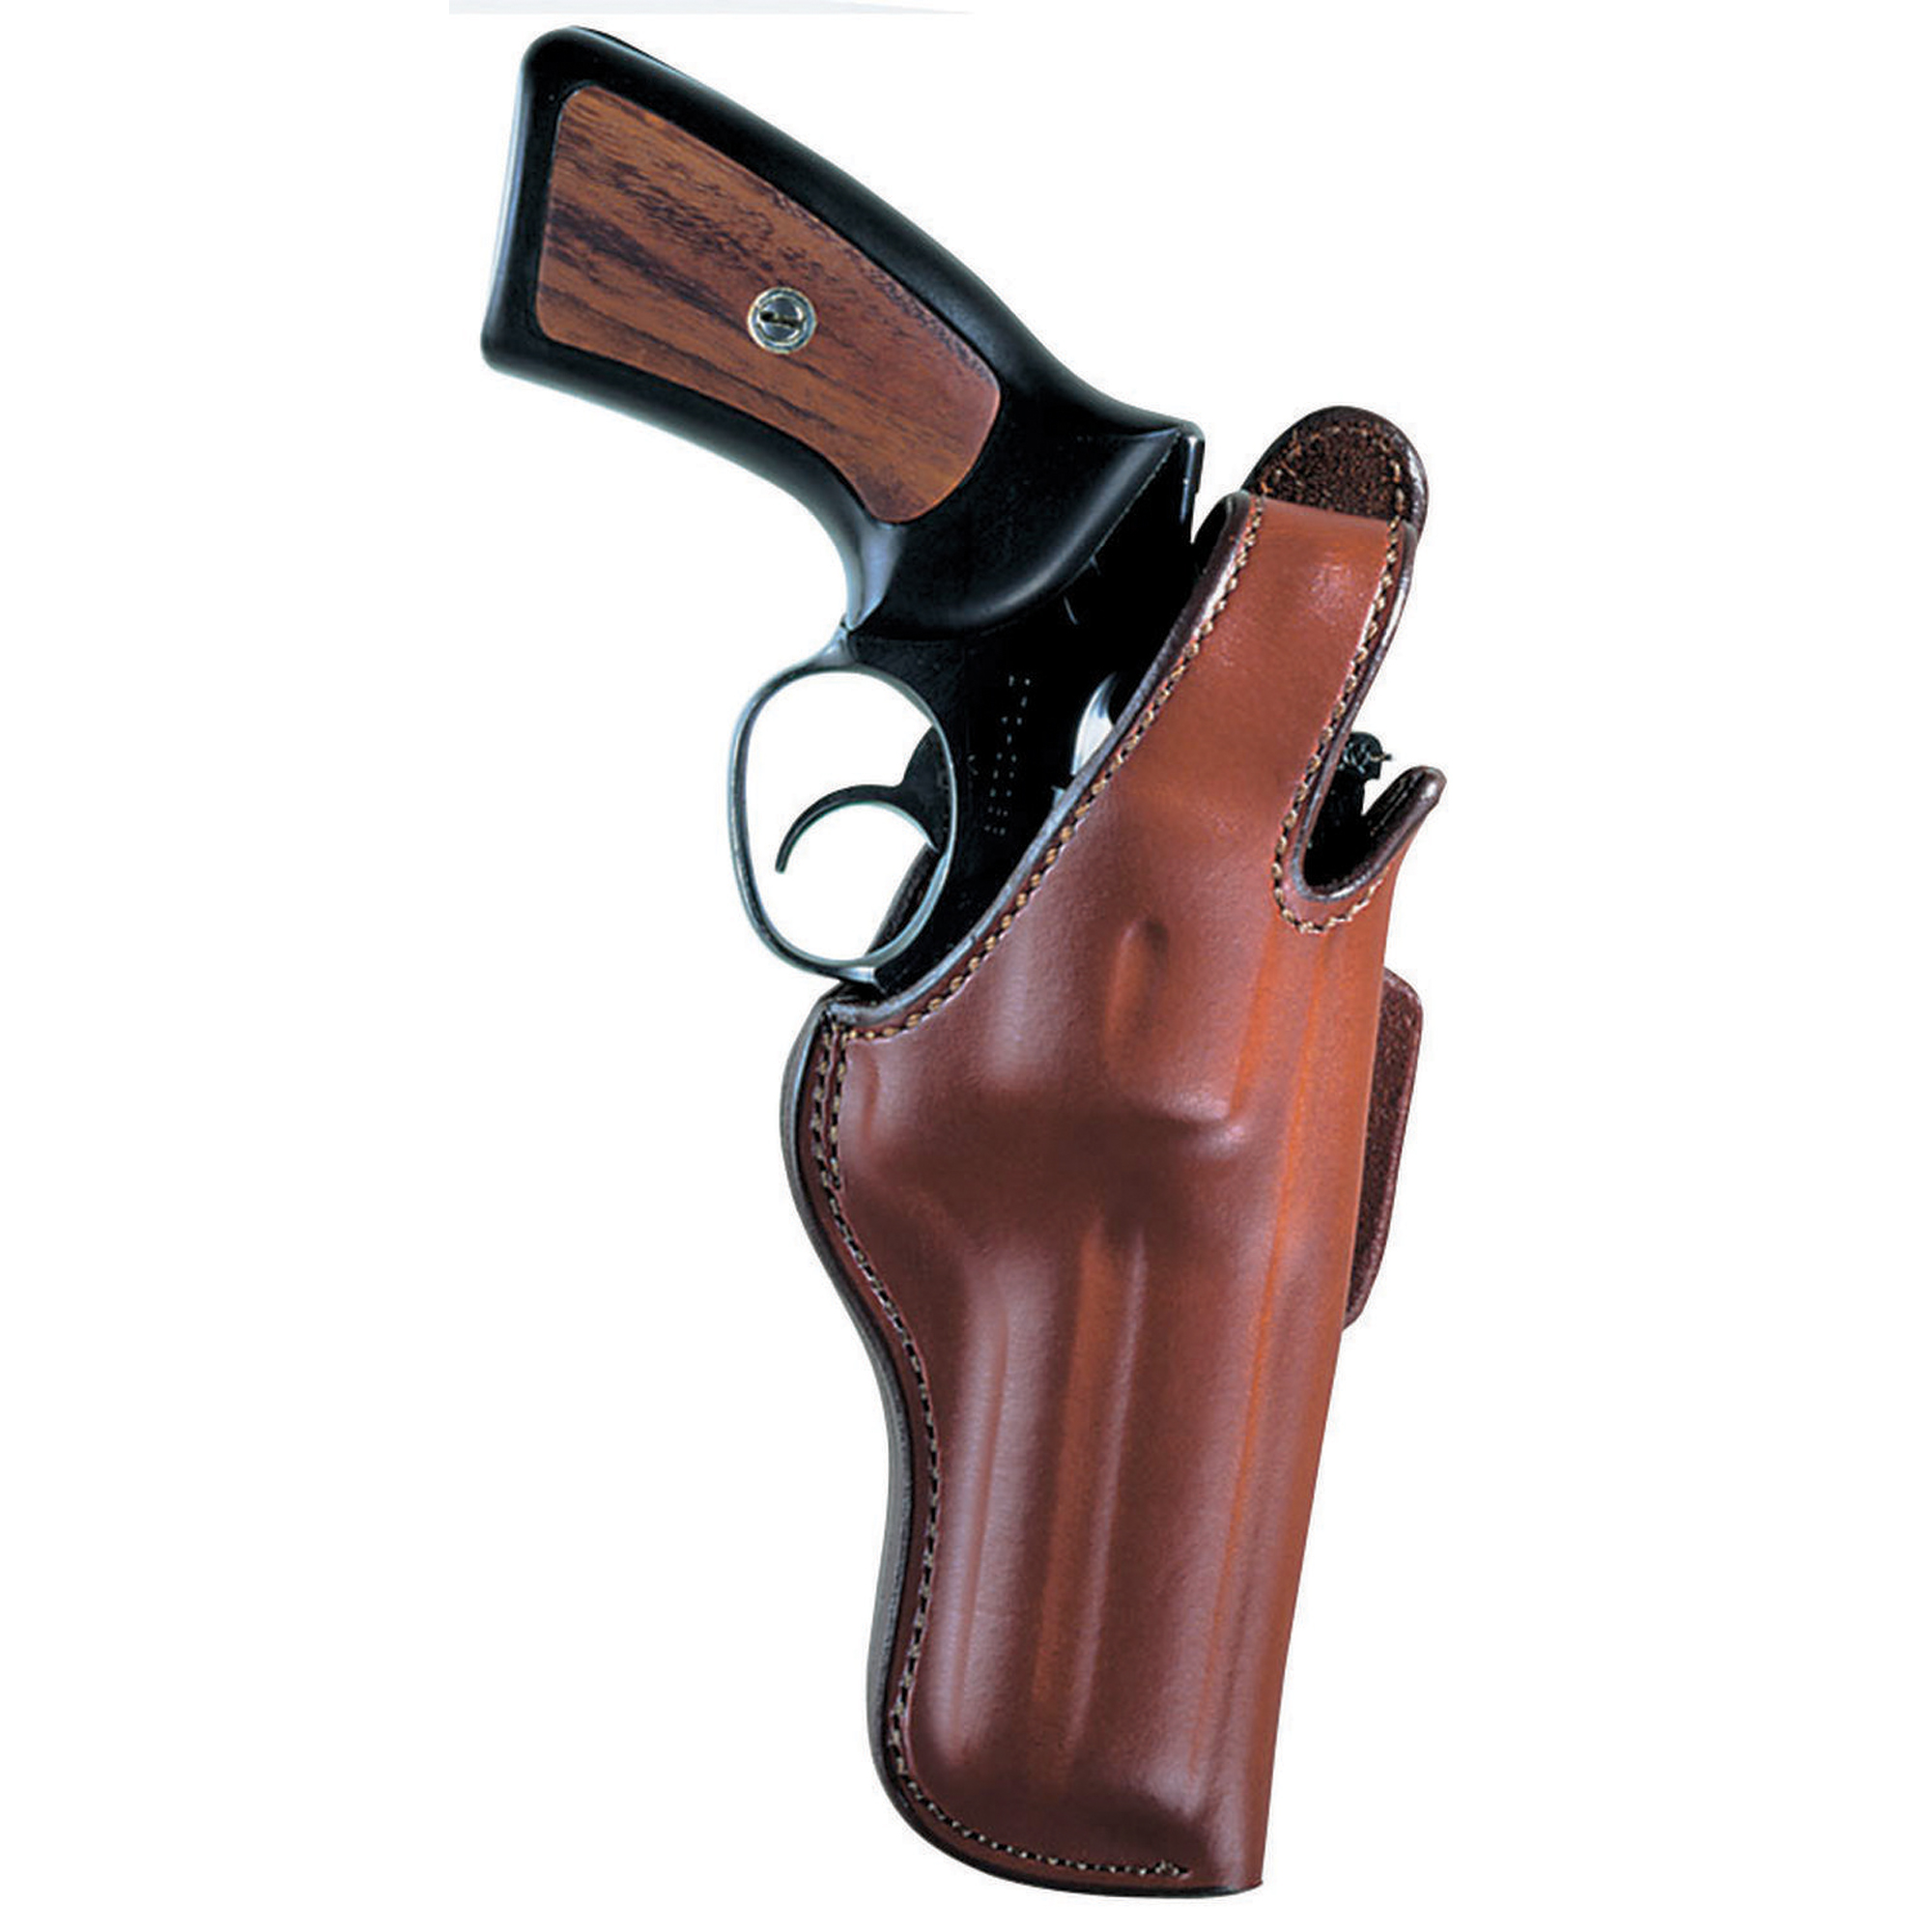 Bianchi's Thumbsnap holster is a classic that is ideal for field and casual concealment of most revolvers. A steel reinforced thumb snap provides retention while the leading edge design protects the adjustable rear sight found on many revolvers.